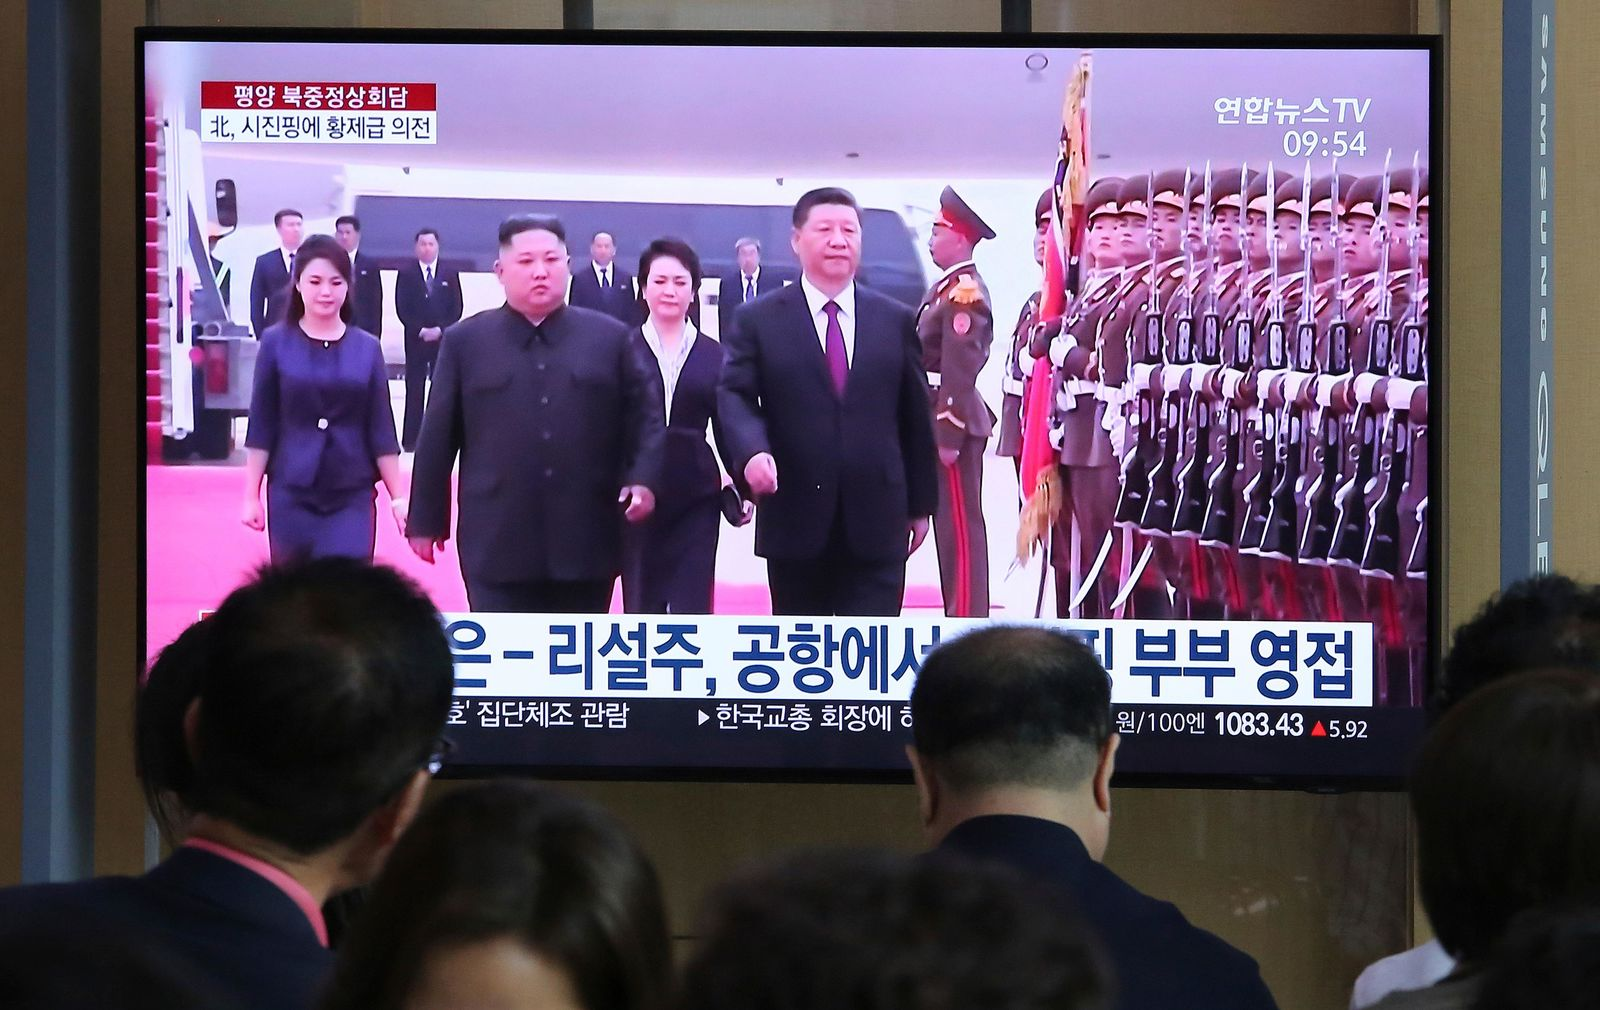 "People watch a TV showing North Korean leader Kim Jong Un, second from left, welcoming Chinese President Xi Jinping at Pyongyang airport, at the Seoul Railway Station in Seoul, South Korea, Friday, June 21, 2019. North Korea's state media says leader Kim Jong Un and Chinese President Xi Jinping held broad discussions over the political situation surrounding the Korean Peninsula and called for stronger bilateral ties in the face of ""serious and complicated changes"" in the region. The signs read: "" Kim Jong Un and his wife Ri Sol Ju welcome Xi Jinping and his wife."" (AP Photo/Ahn Young-joon)"